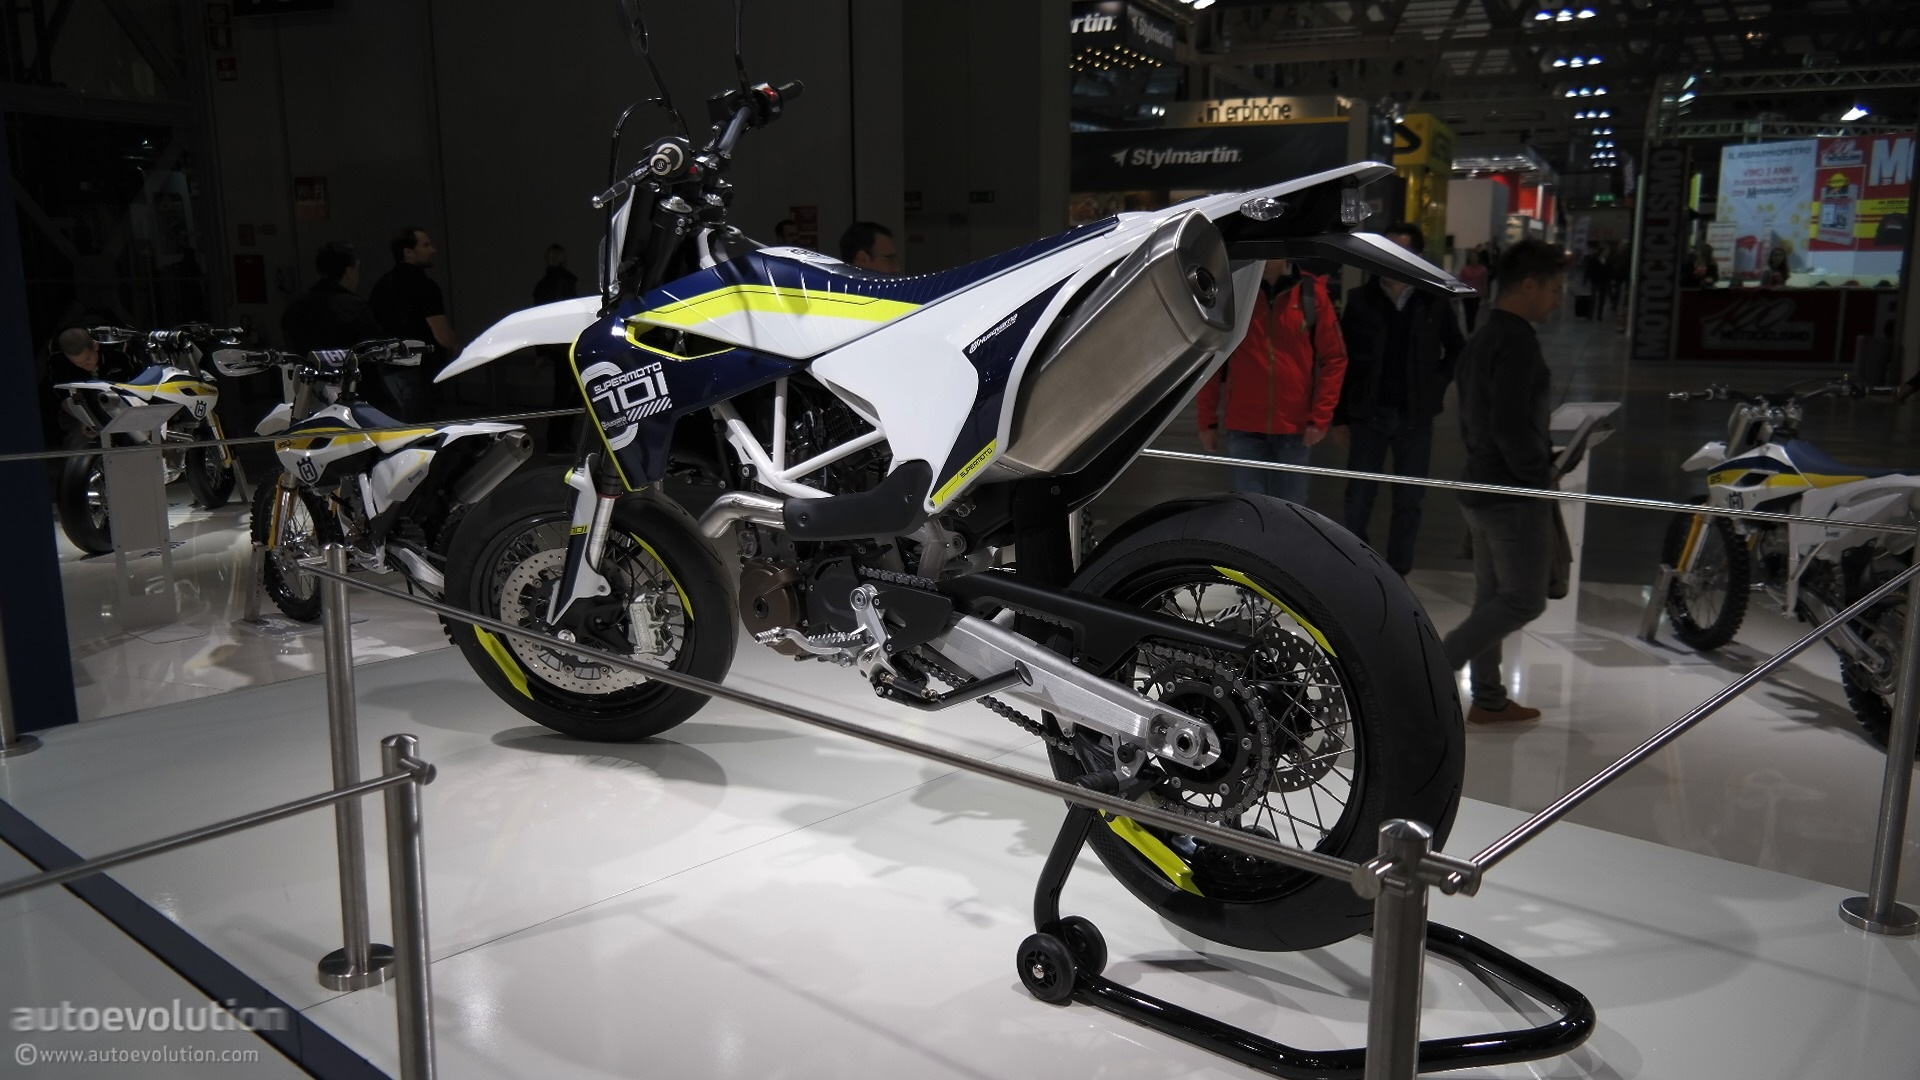 Full Hd Motorcycle Wallpaper 2015 Husqvarna 701 Supermoto Celebrates Brand S Return To